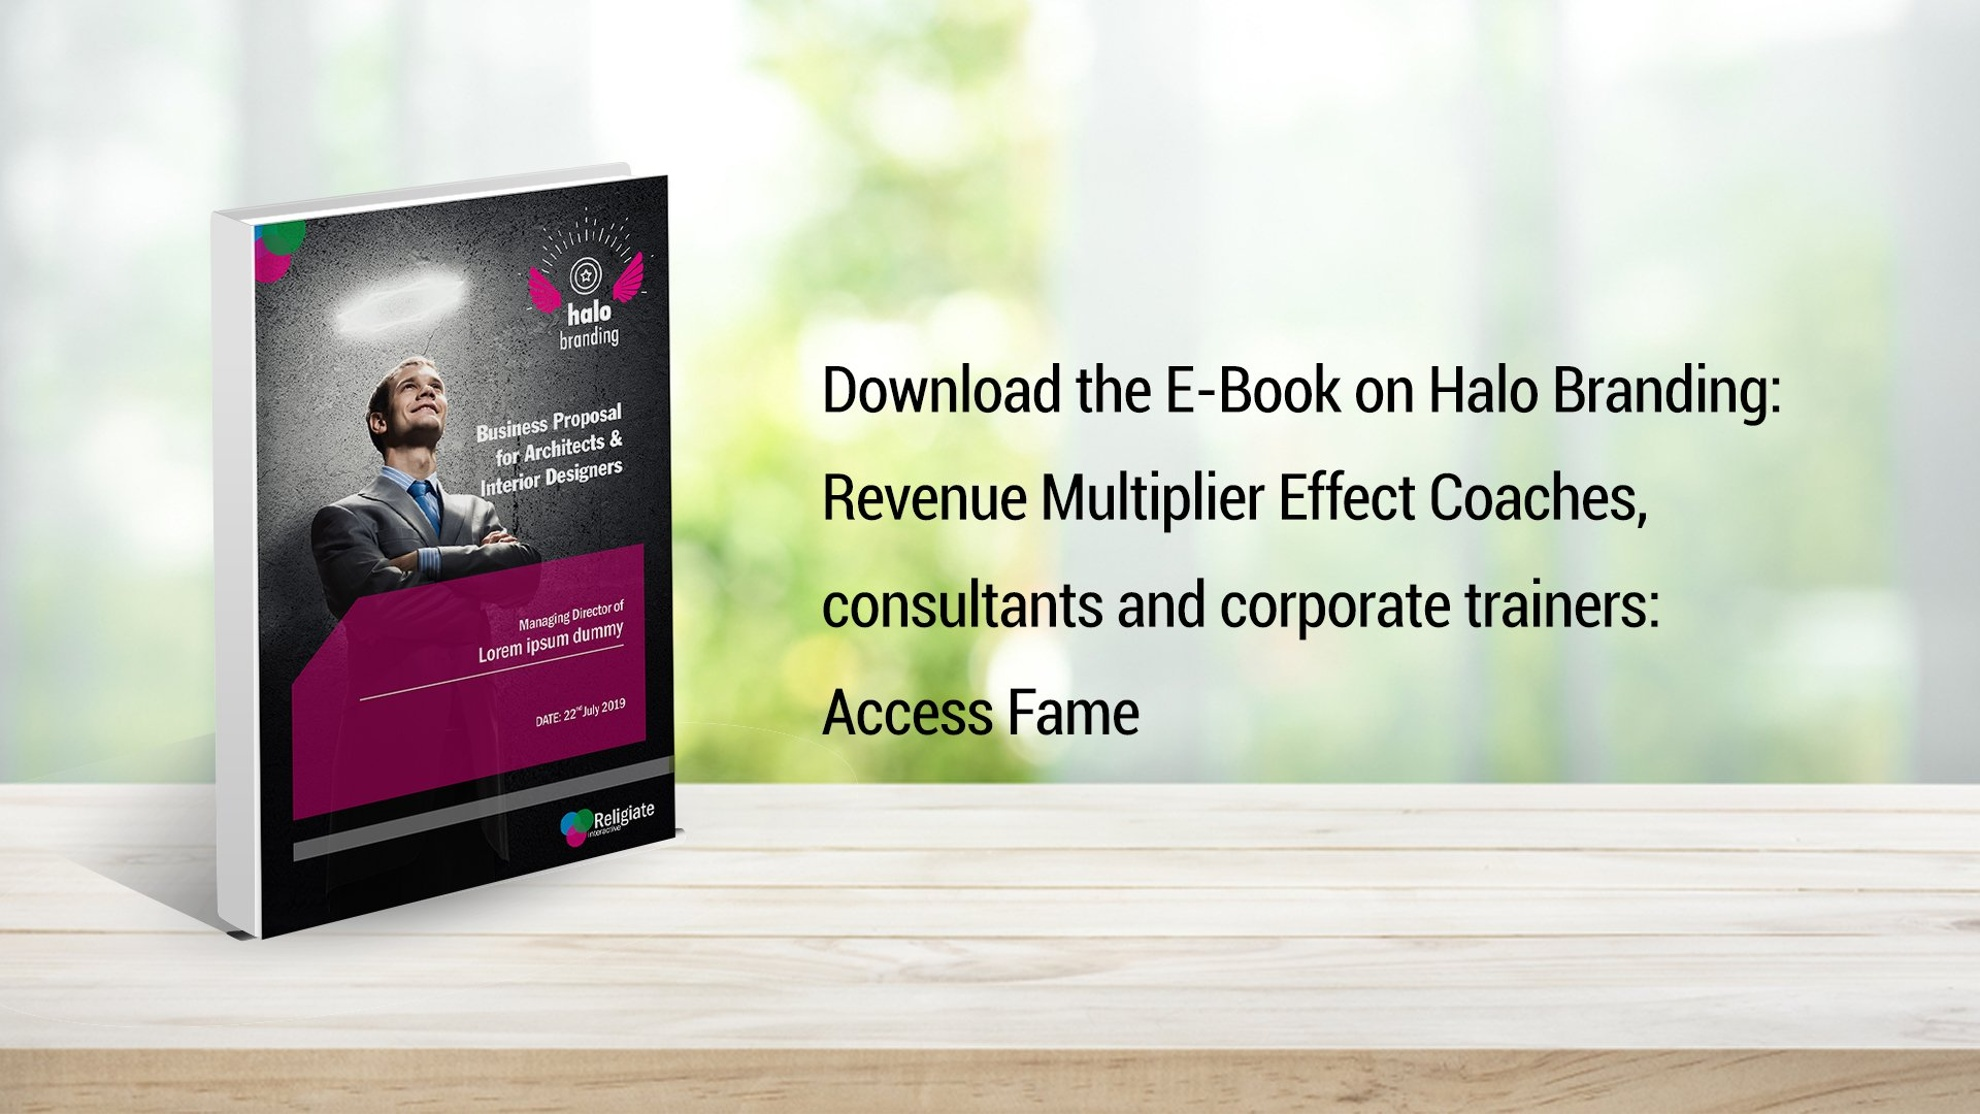 Ebook on Halo Branding